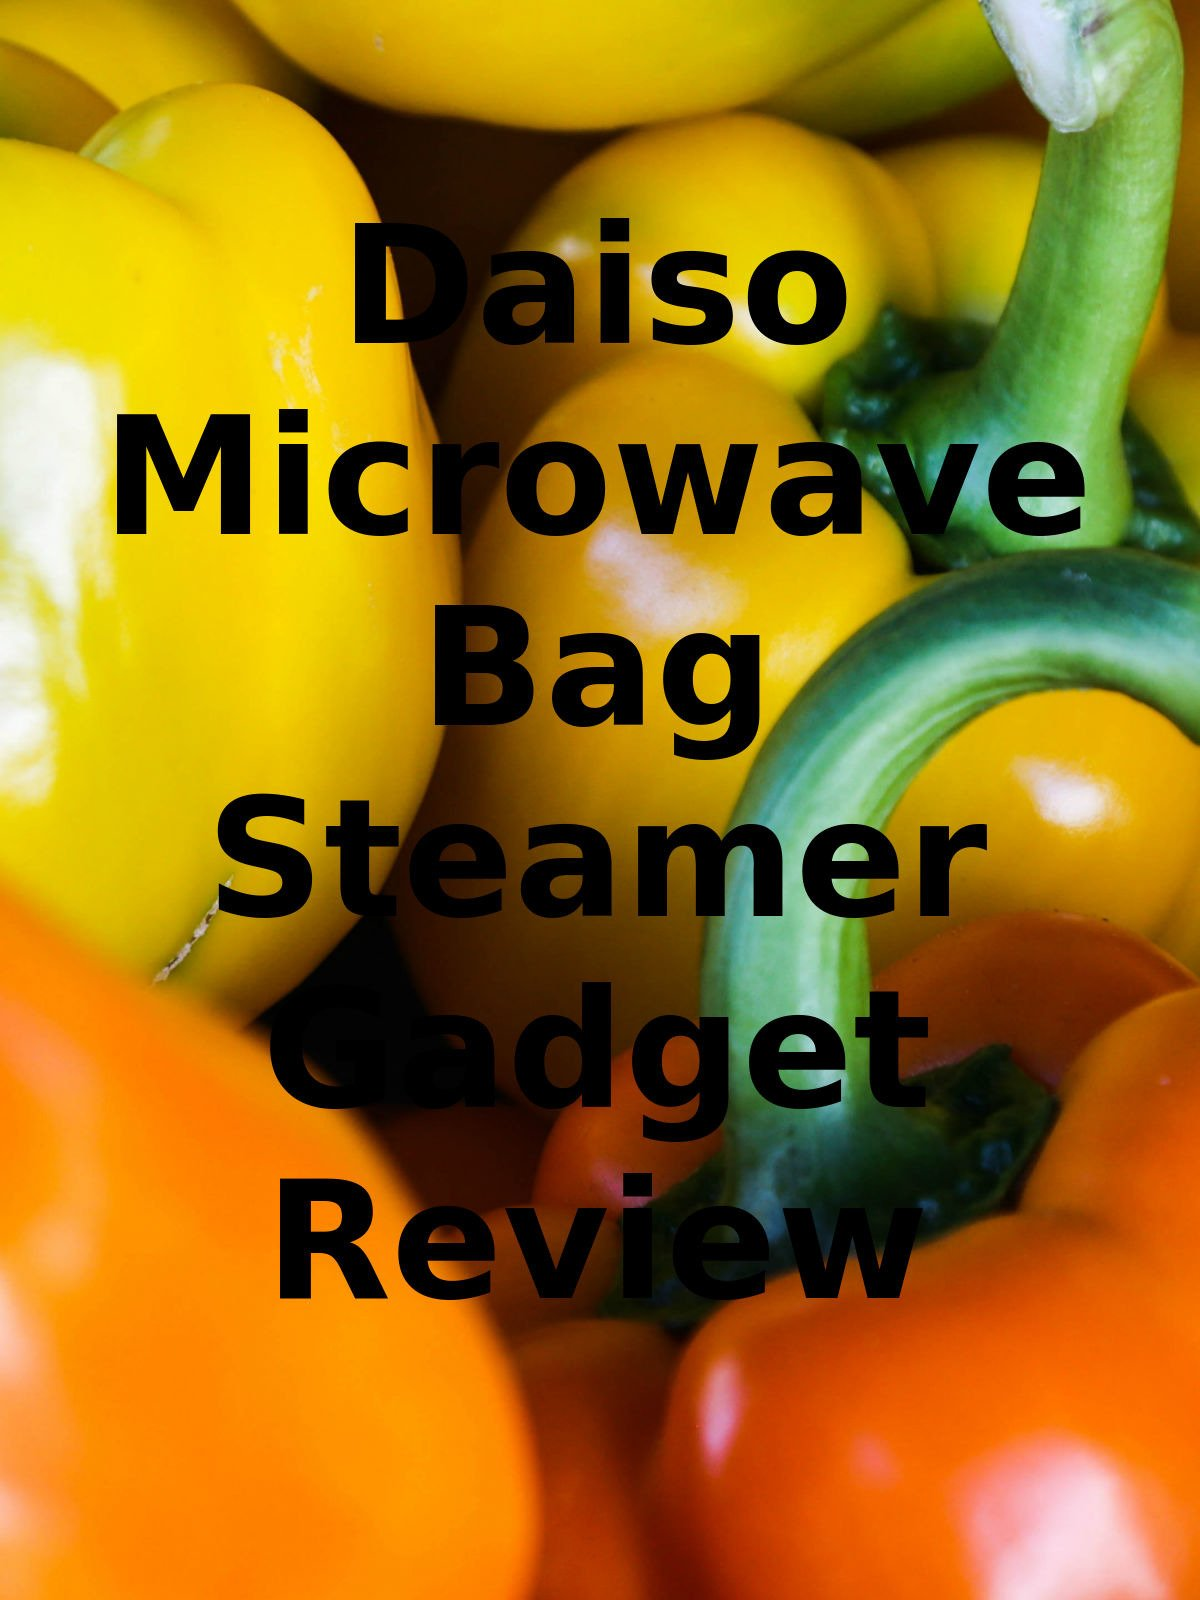 Review: Daiso Microwave Bag Steamer Gadget Review